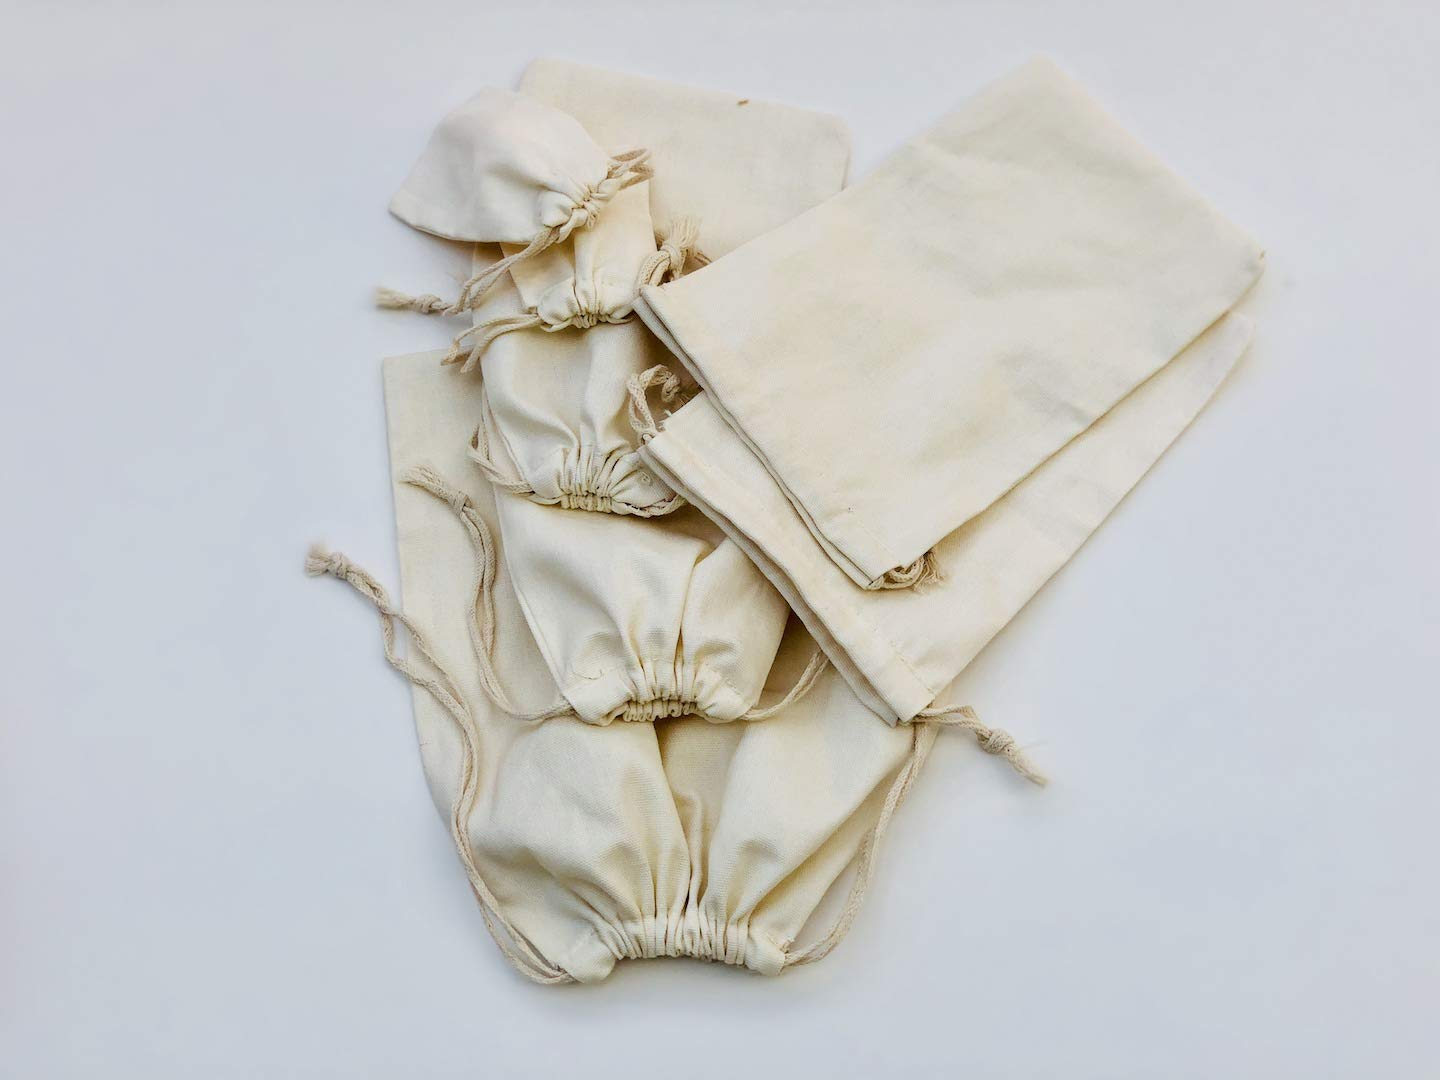 Biglotbags 100 Pieces of 12 x 16 Inches Cotton Muslin Bags, 100% Organic Cotton, Double Drawstring Style, Premium Quality by BigLotBags (Image #3)